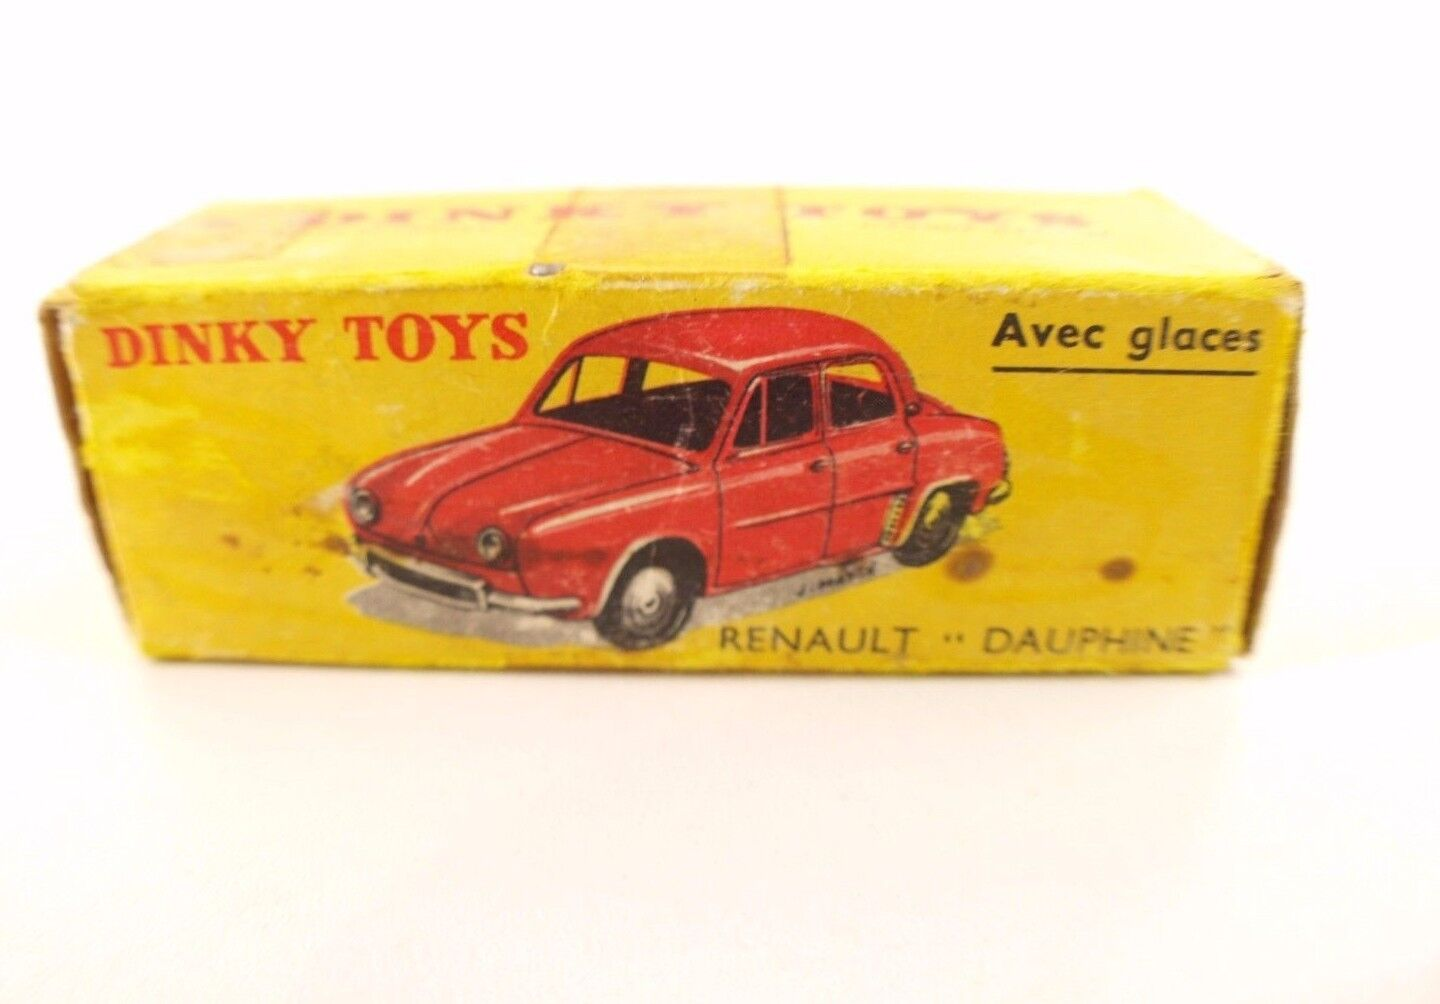 Boite seule Dinky giocattoli F n° 524 renault Dauphine scatola only